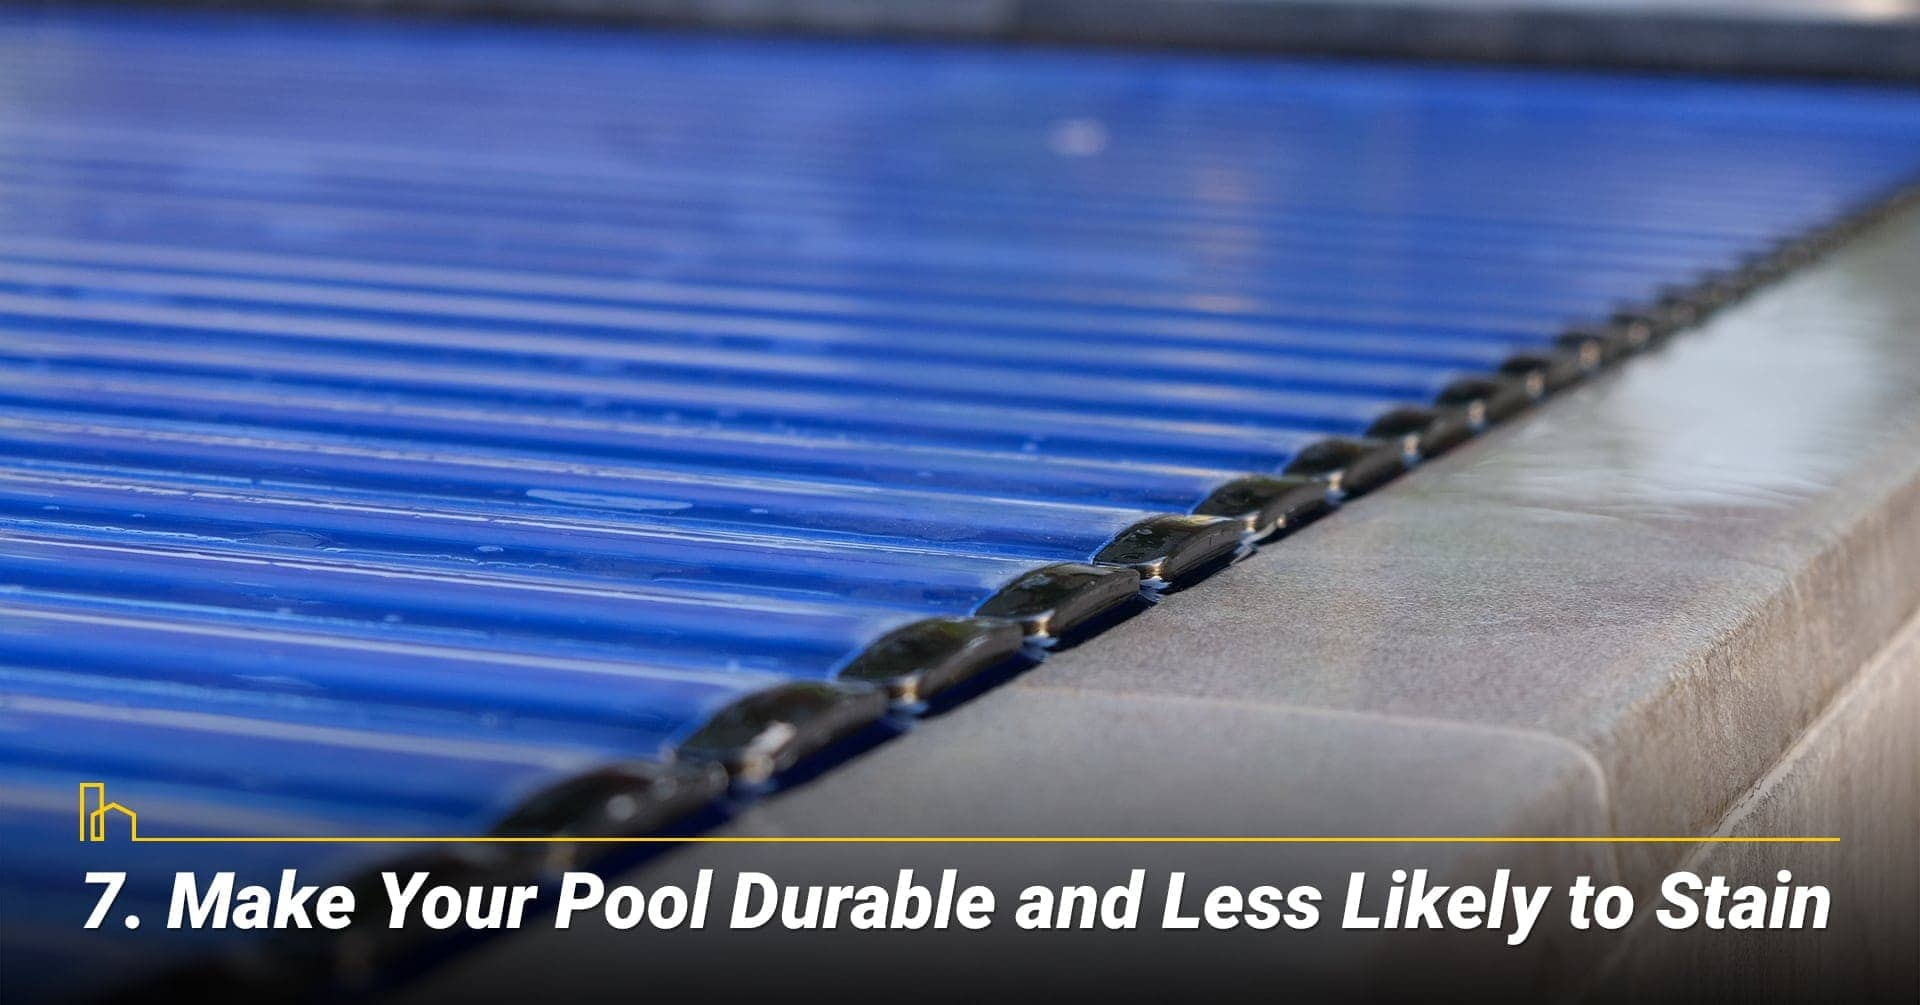 Make Your Pool Durable and Less Likely to Stain, maintain the good shape